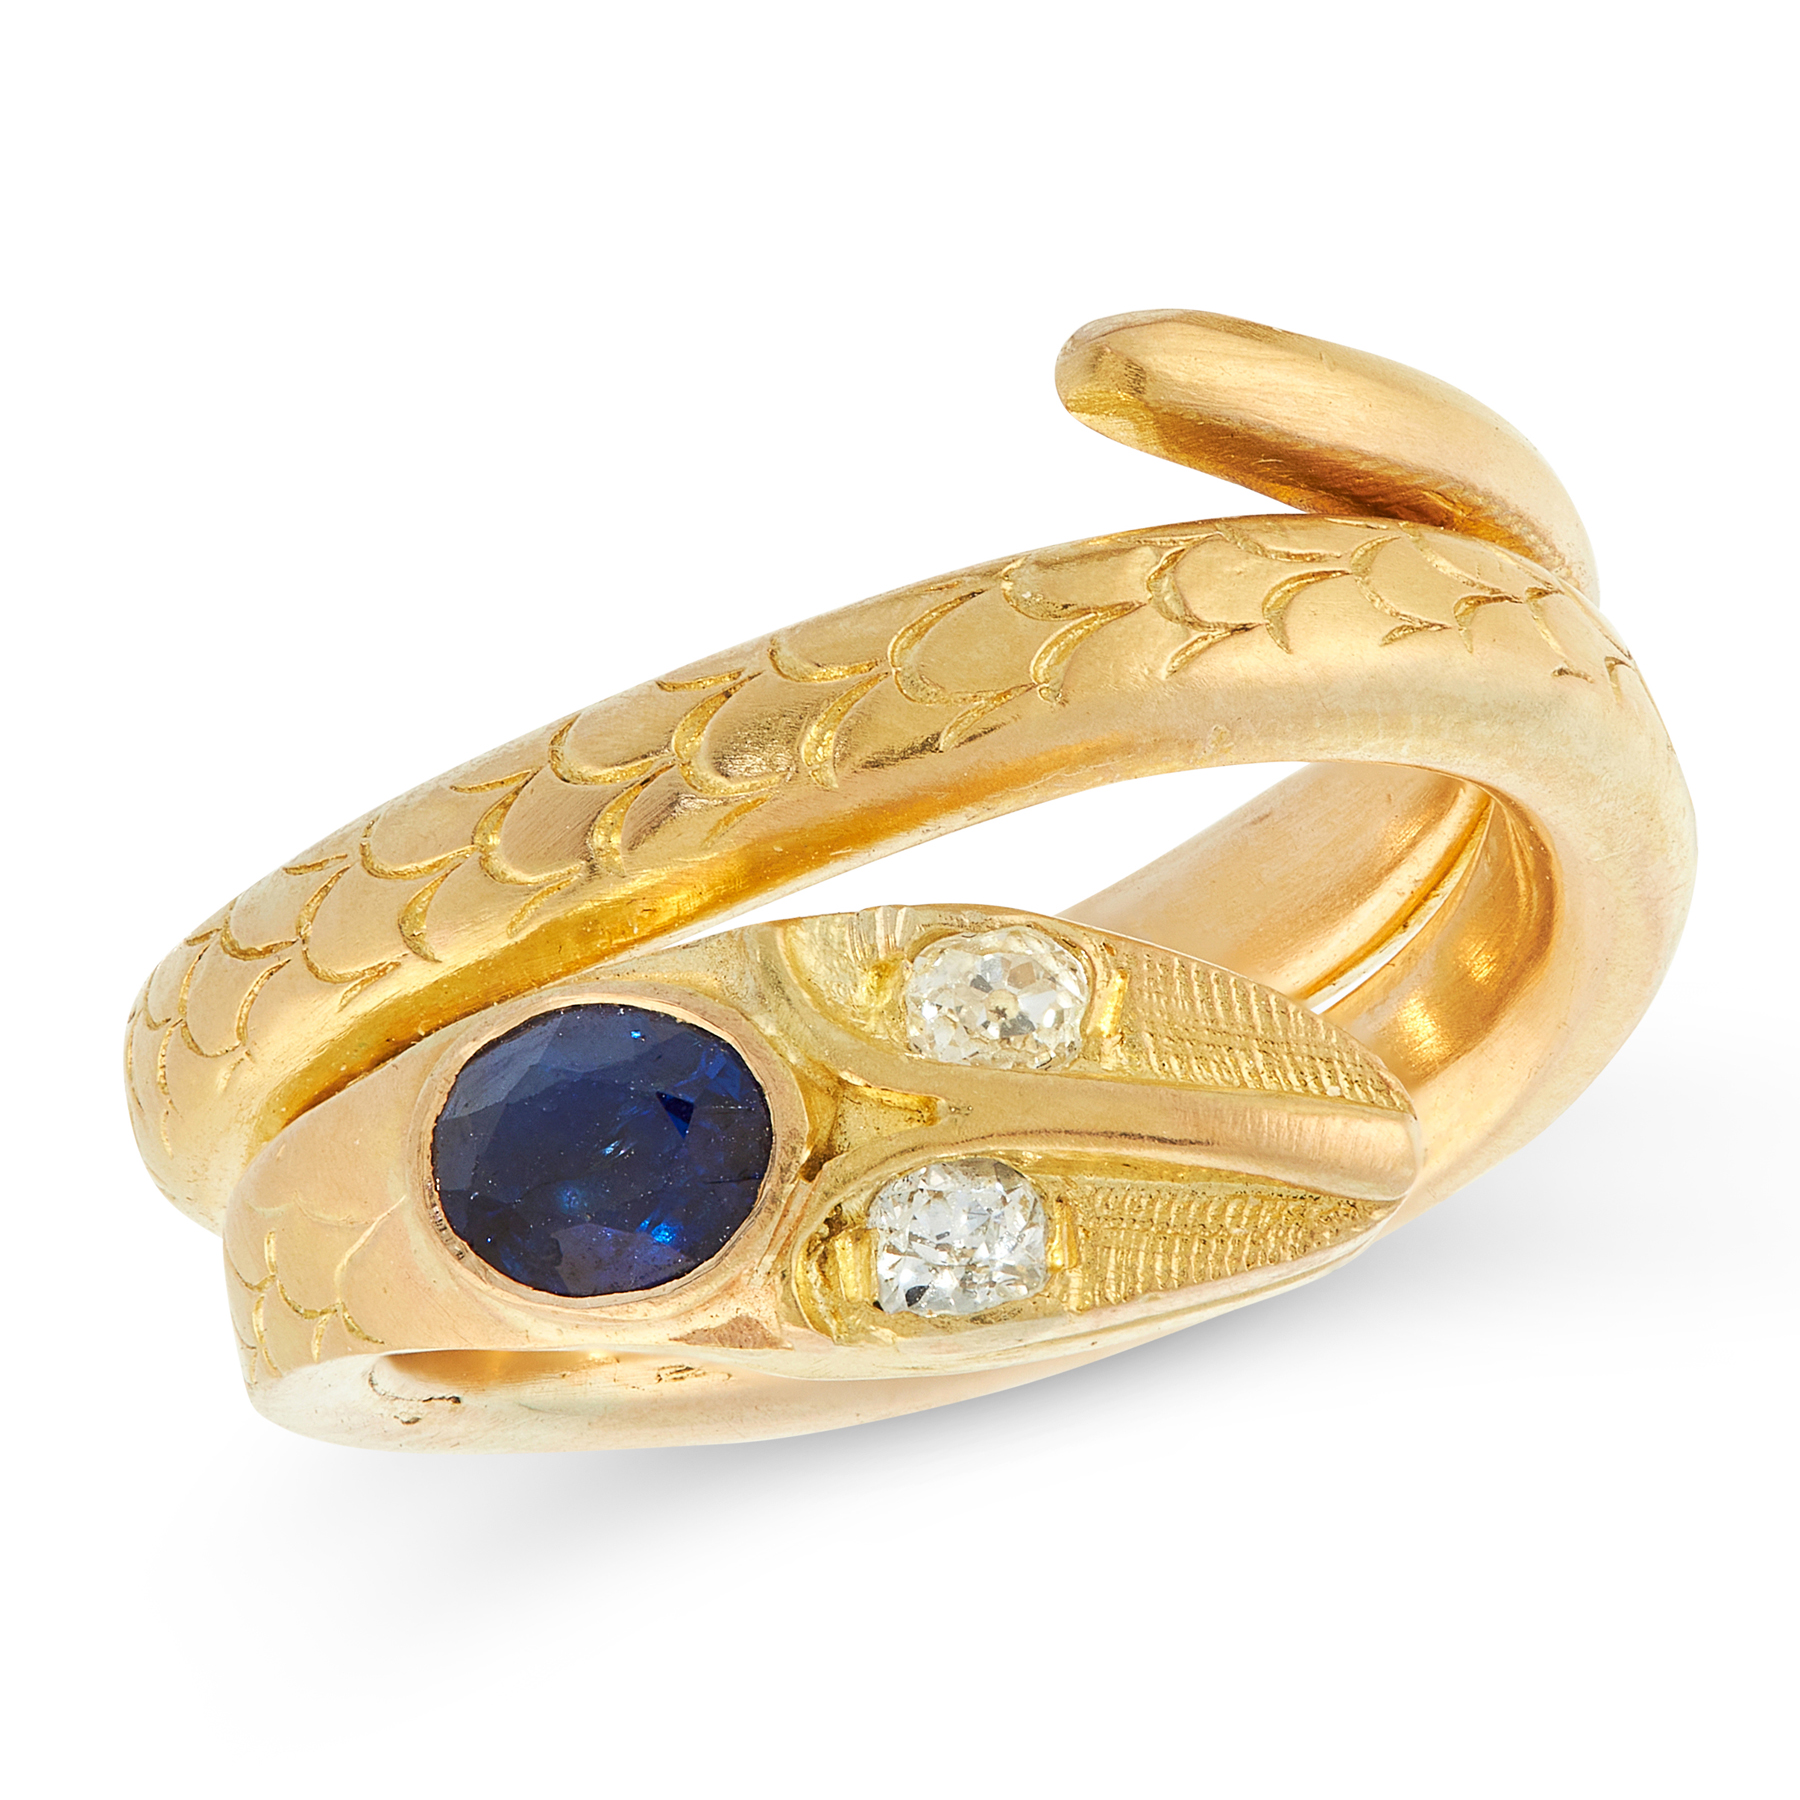 A SAPPHIRE AND DIAMOND SNAKE RING in high carat yellow gold, designed as a snake coiled around on - Image 2 of 2